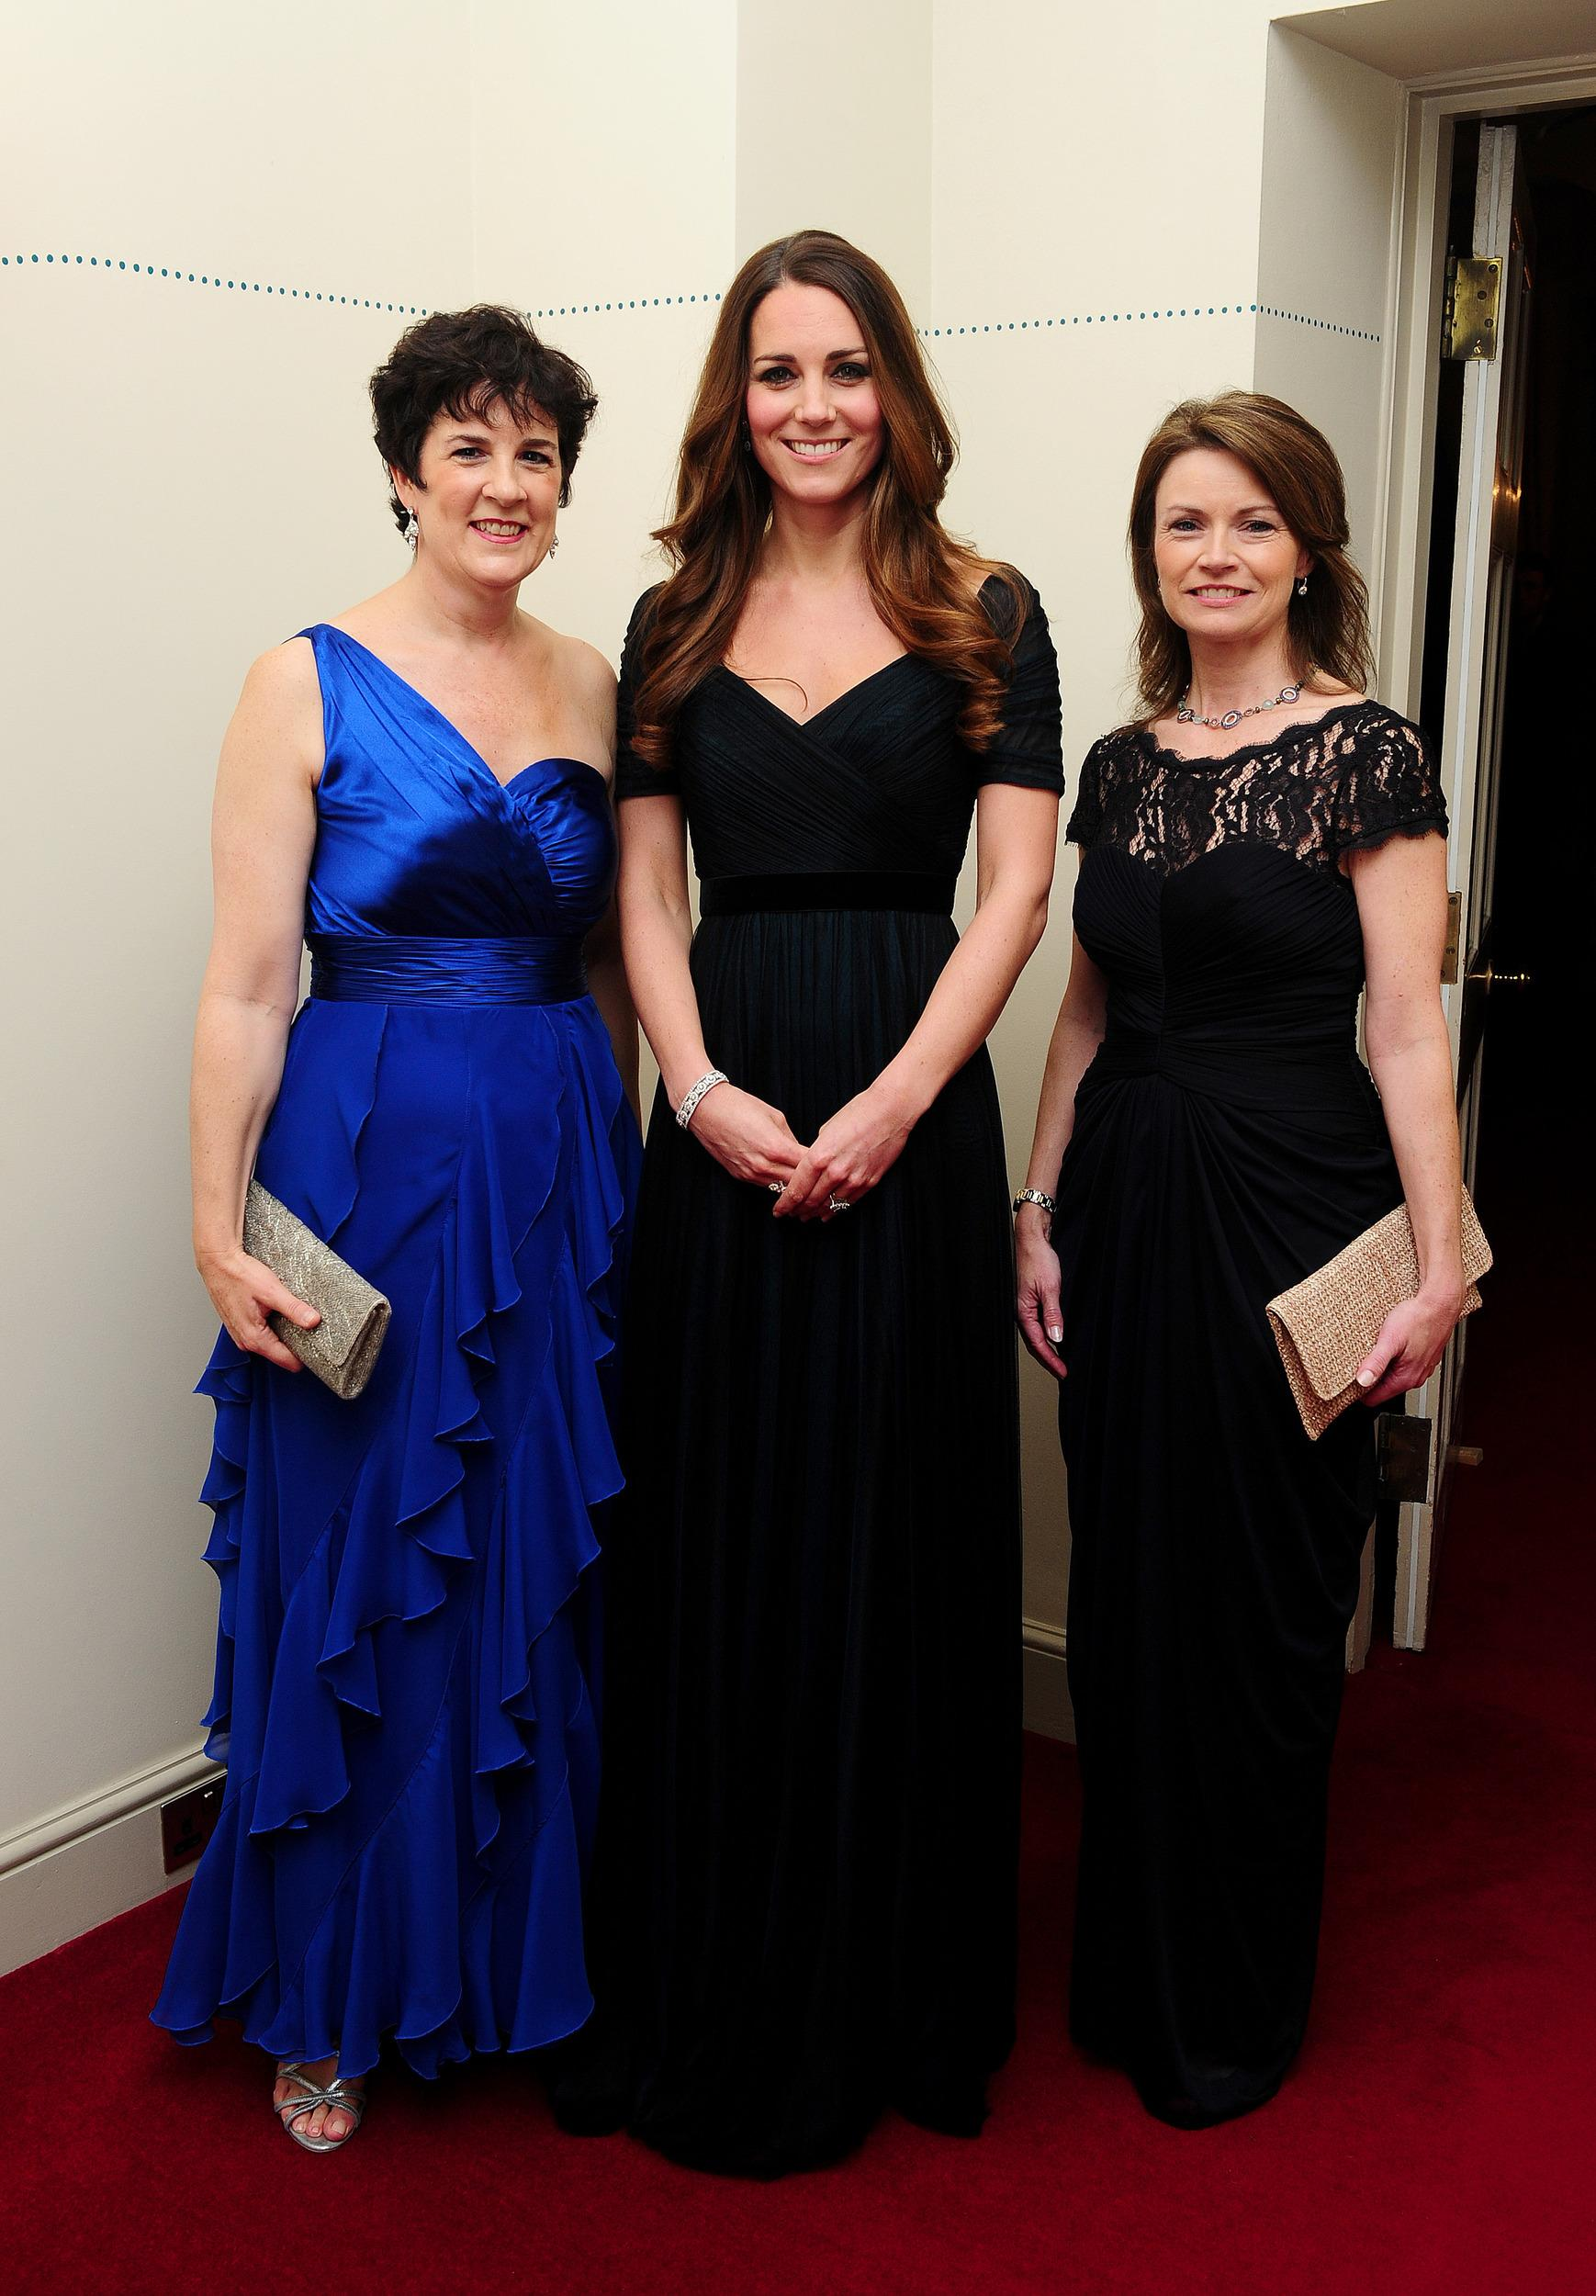 Kate attended a charity gala the following day, wearing an elegant navy Jenny Packham gown.